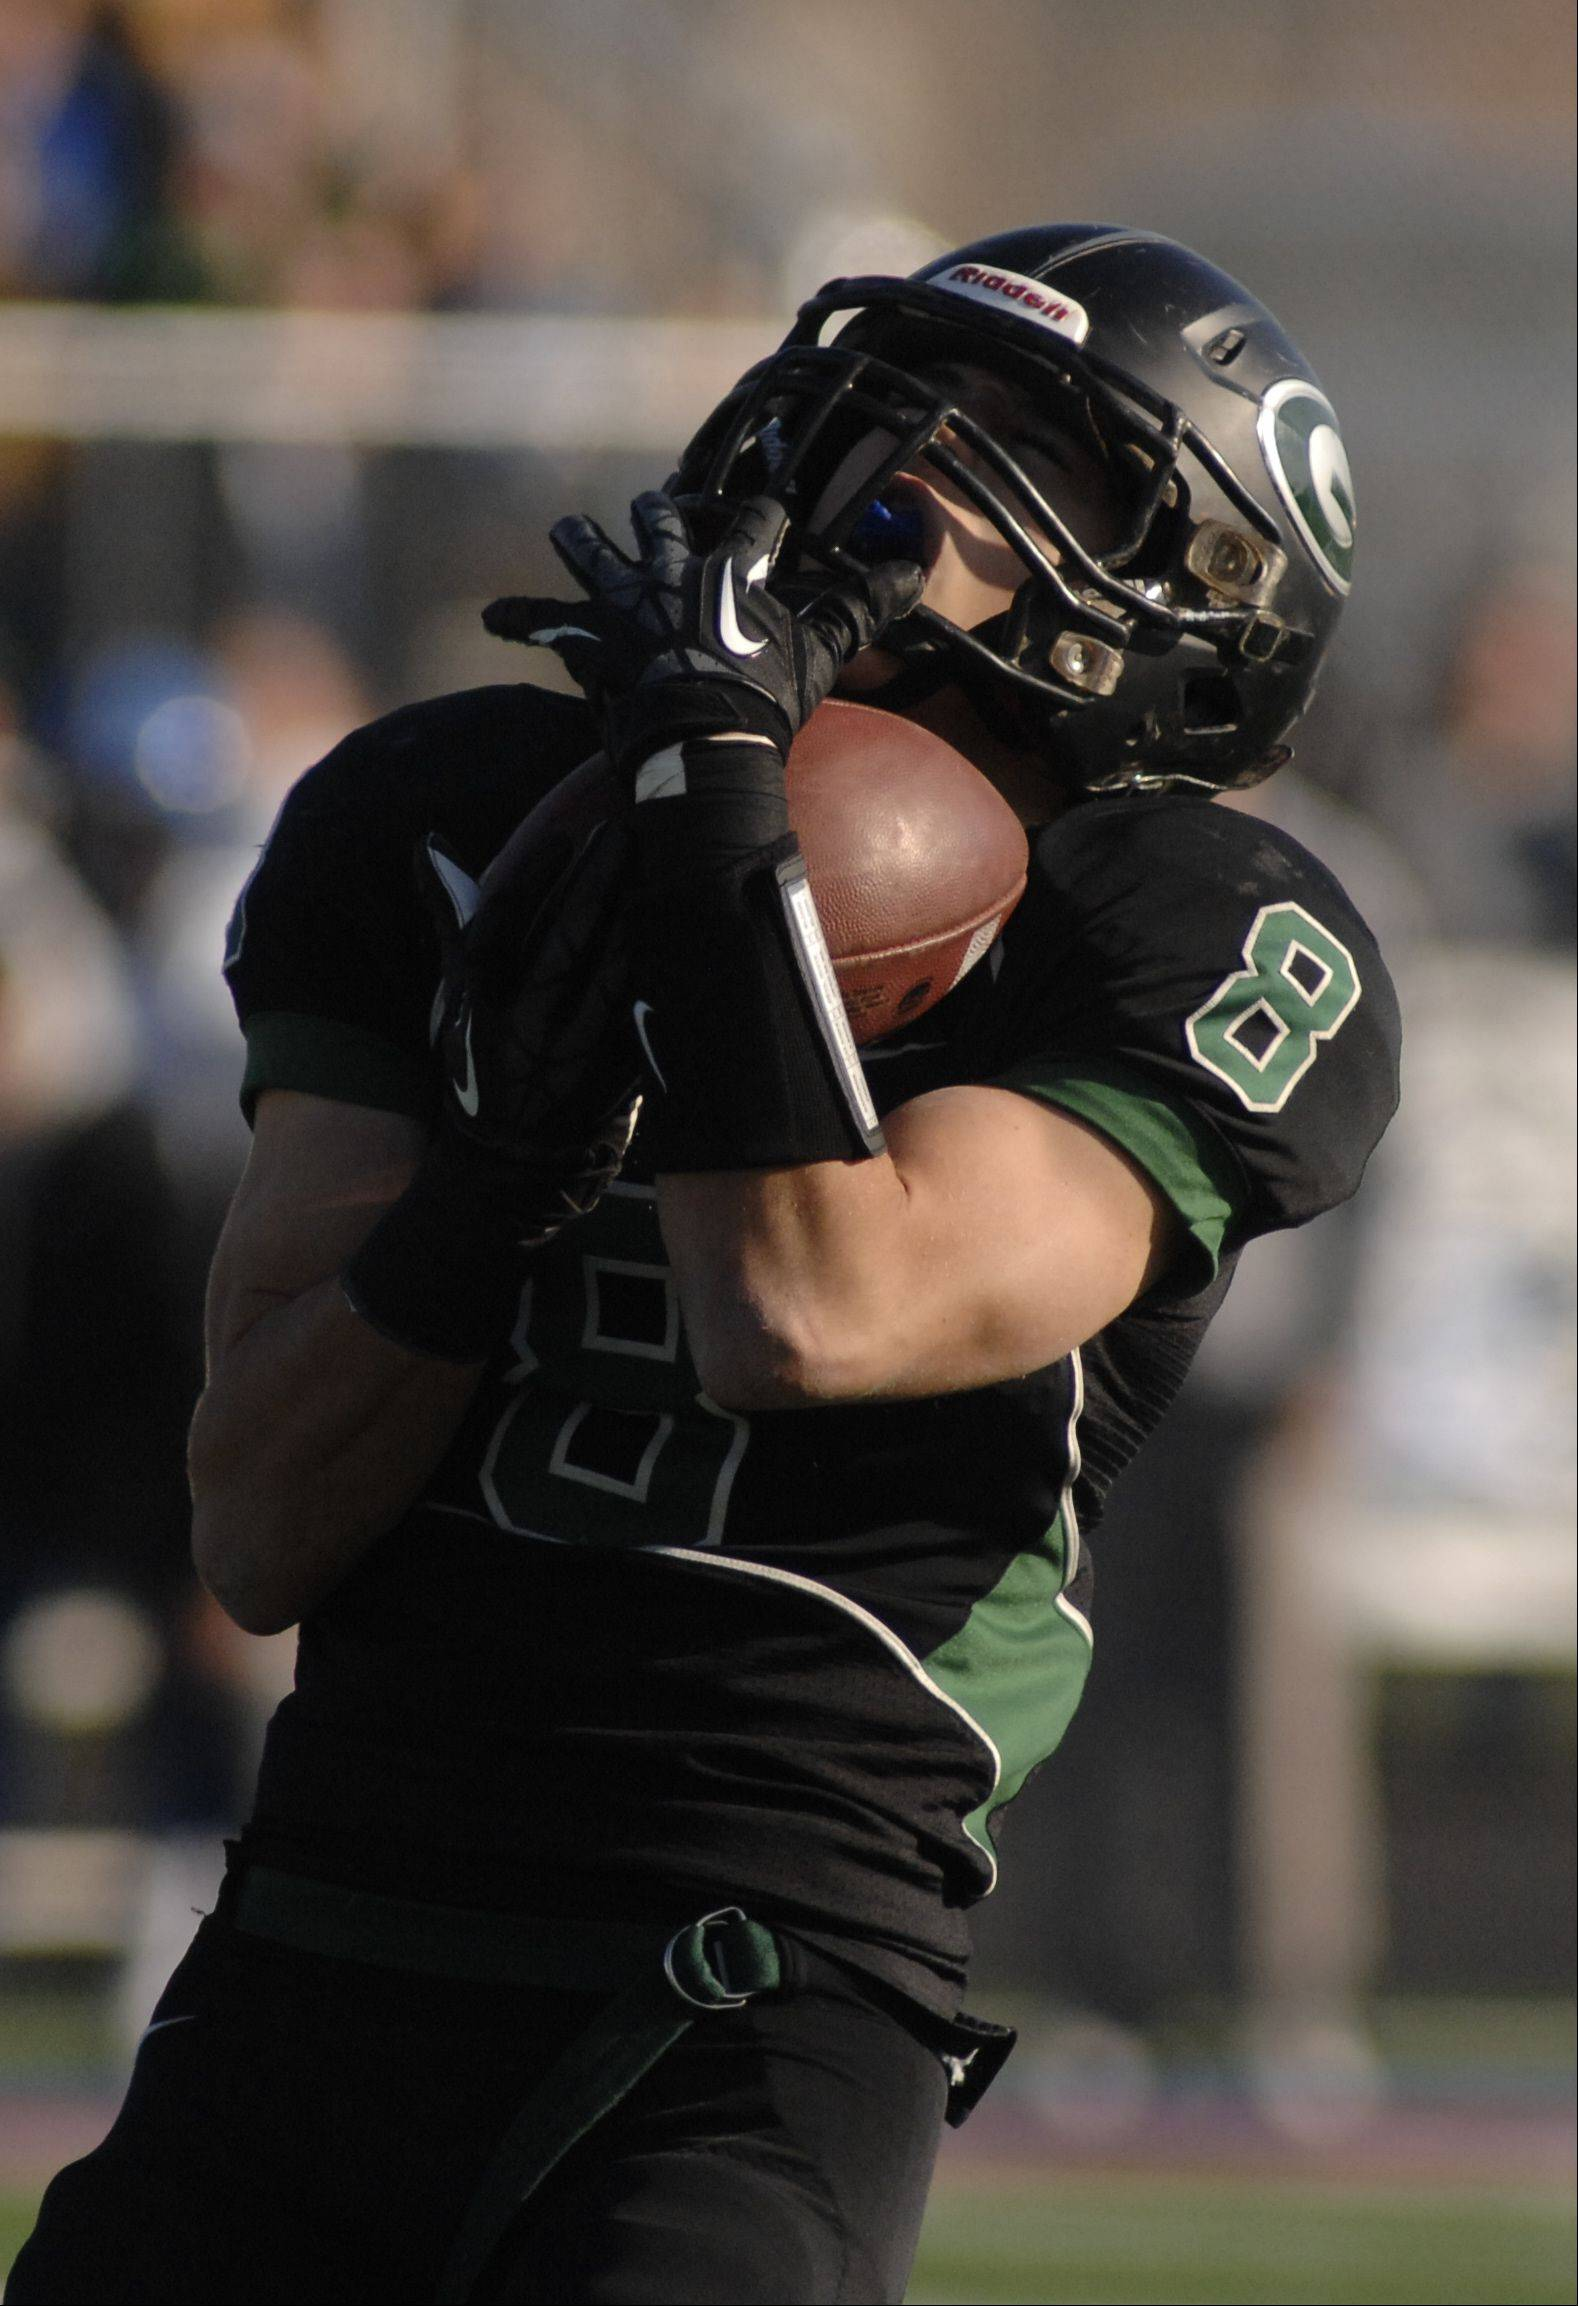 Playoffs- State Semifinals- Photos from the Lake Zurich vs. Glenbard West Class 7A football game on Saturday, Nov. 17 in Glen Ellyn.